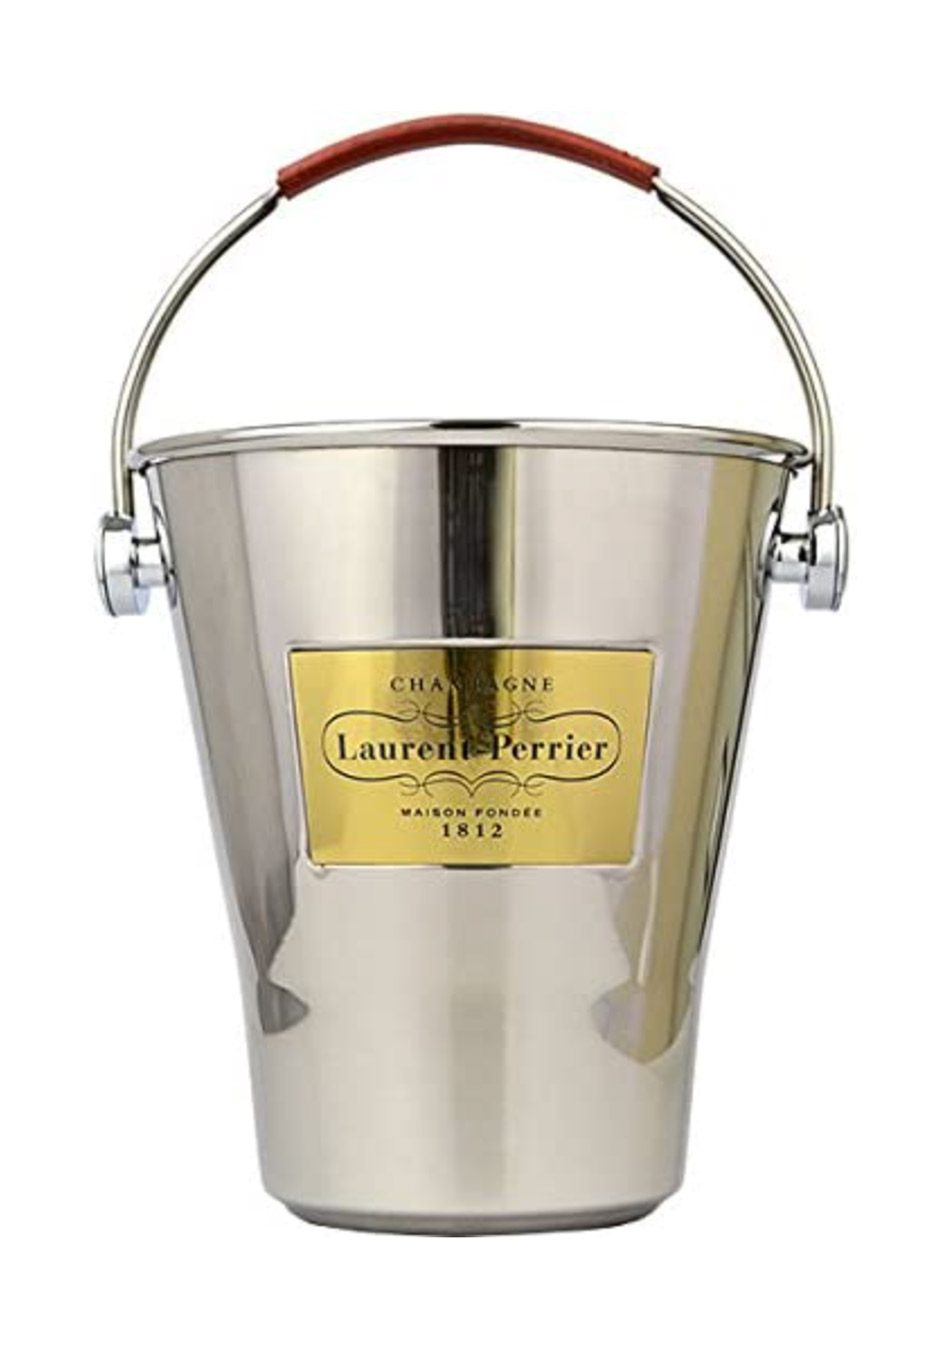 Laurent Perrier   Stainless Steel   Champagne   Ice Bucket